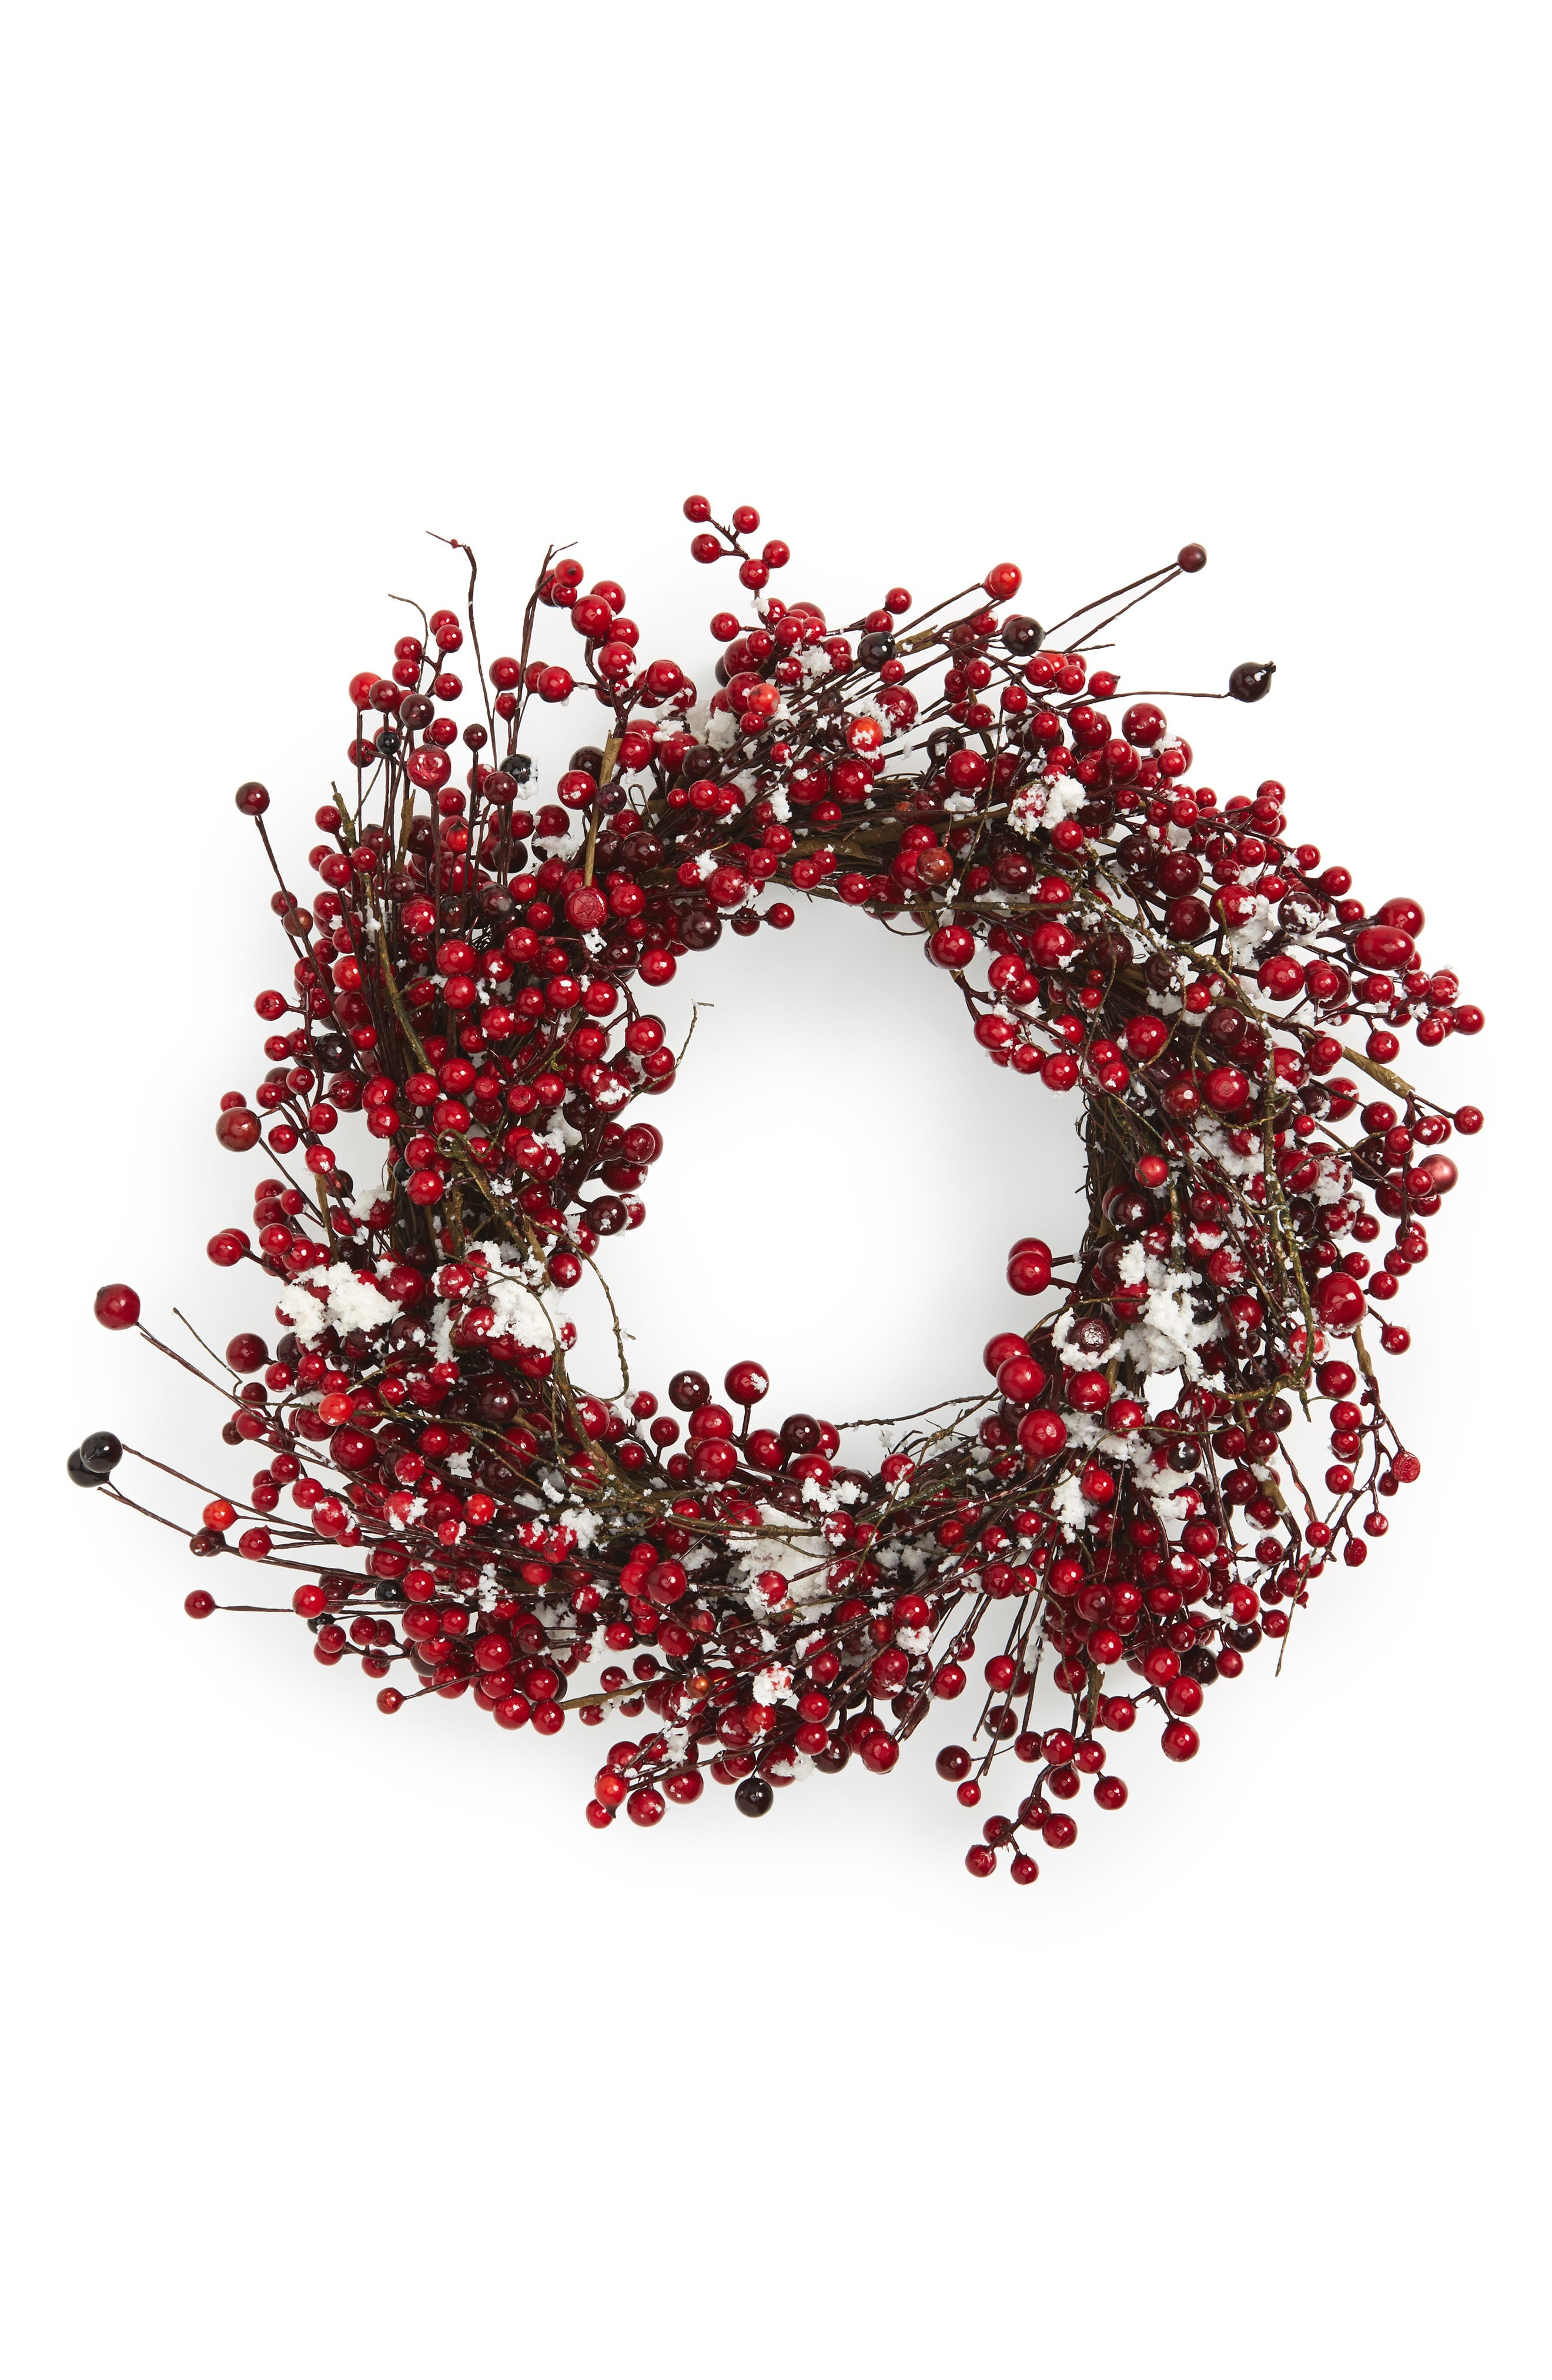 Main Image - Arty Red Berry Wreath